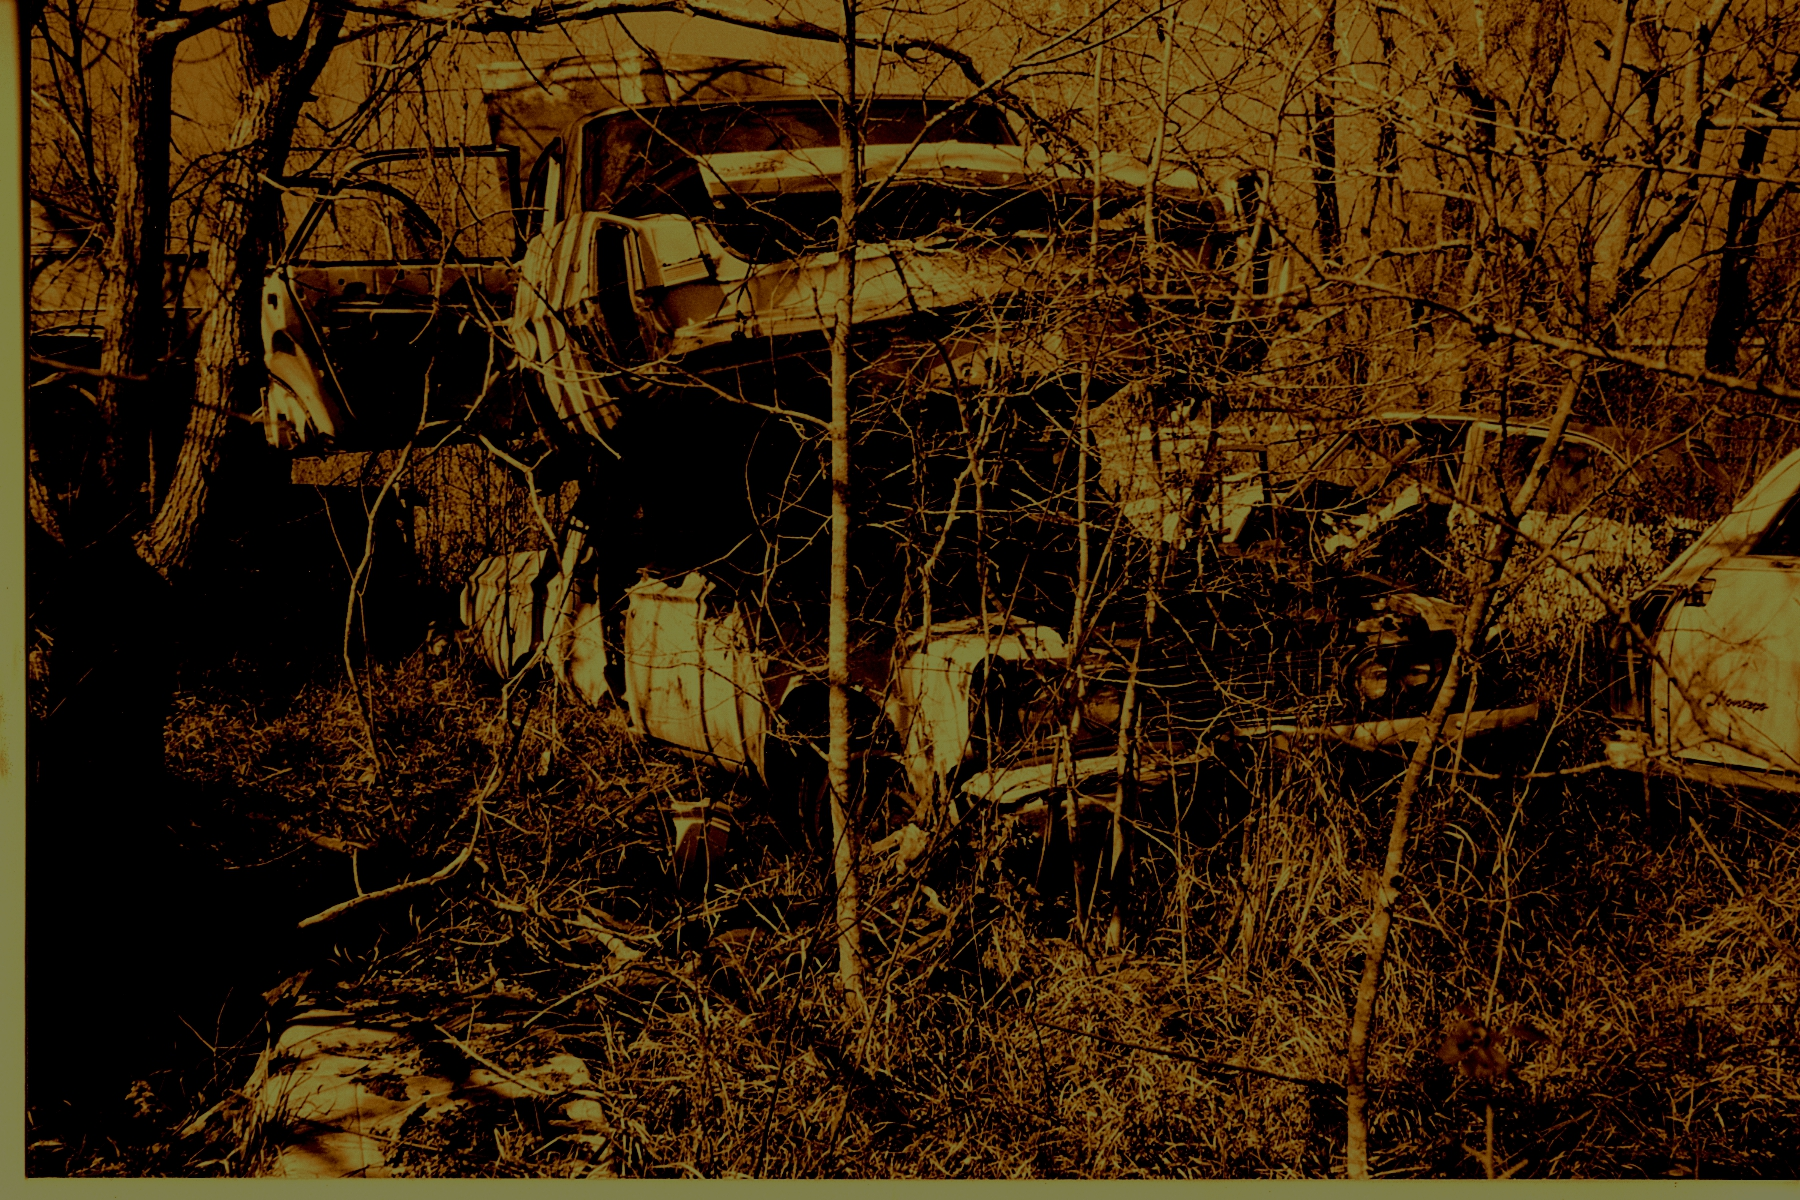 junkyard9-jpg-sepia_-jpg-darker